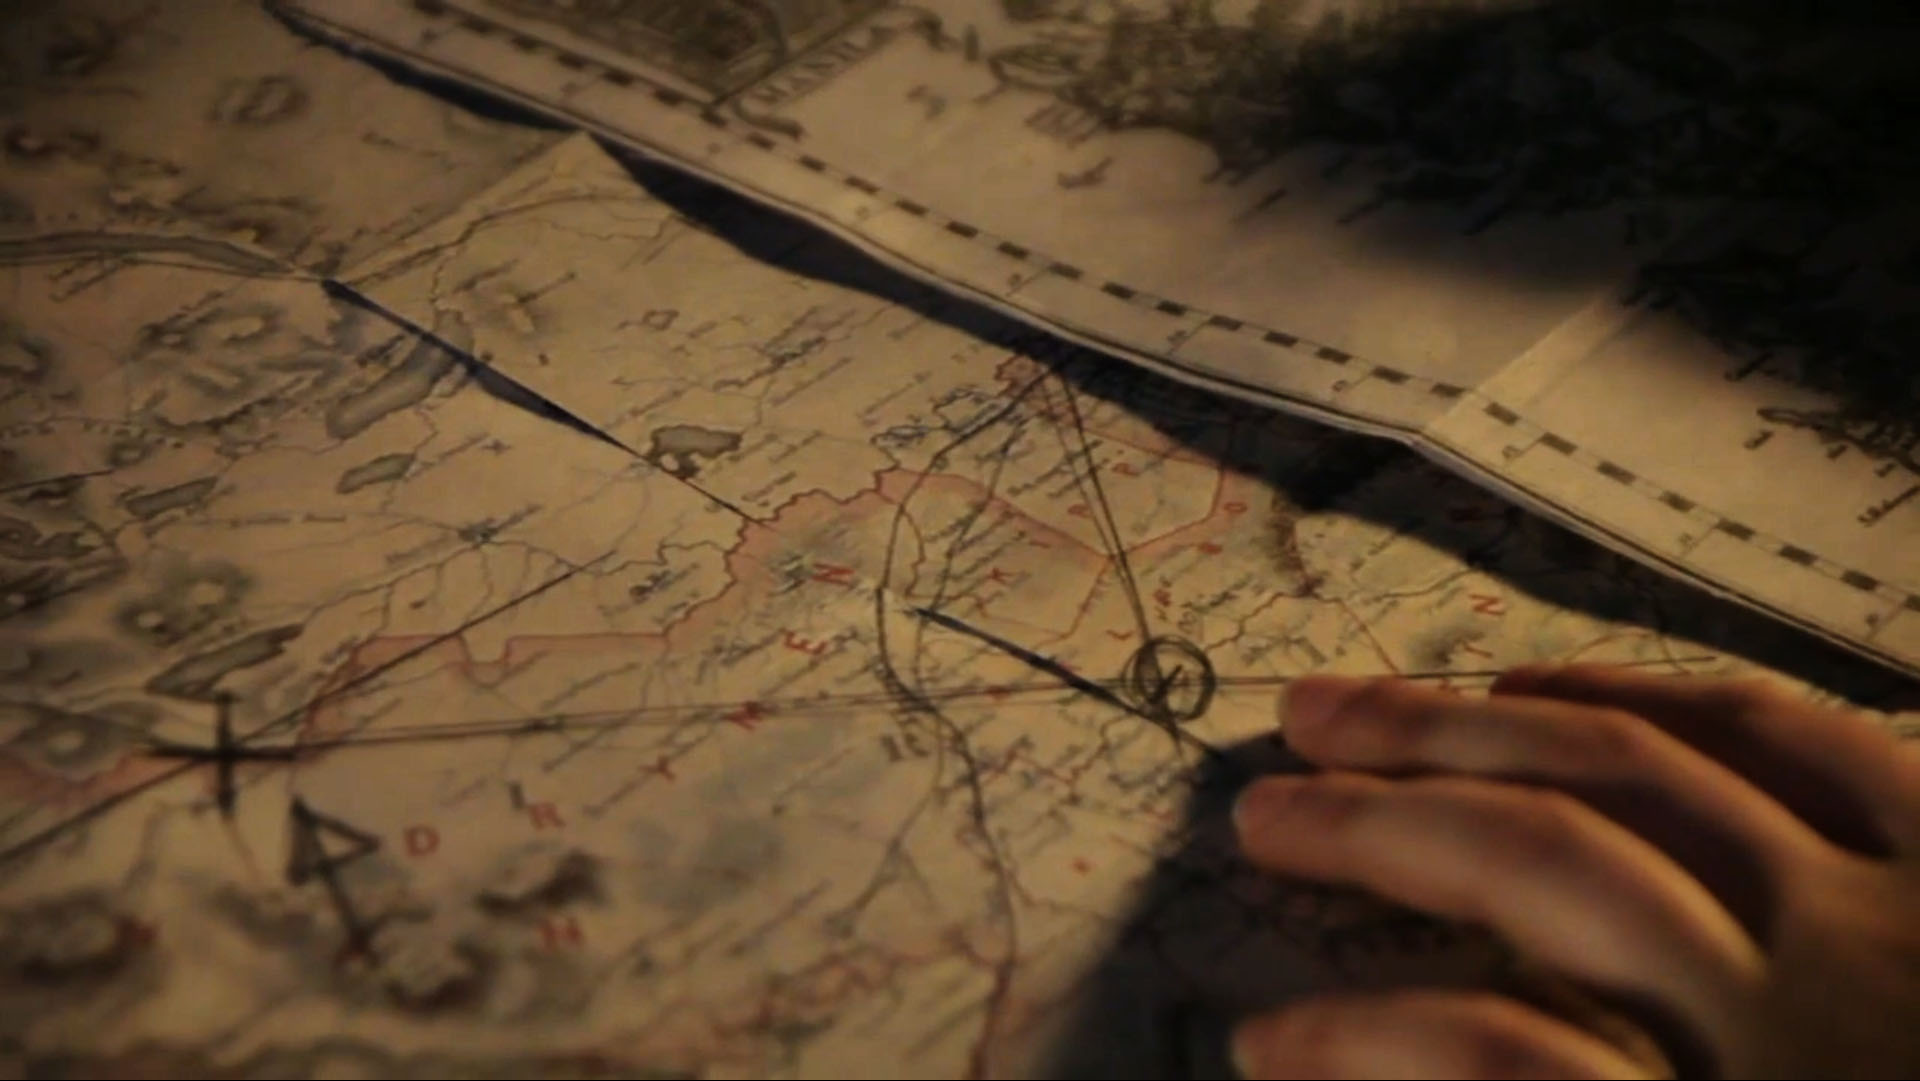 Closeup of a woman's hand as she examines an old map.